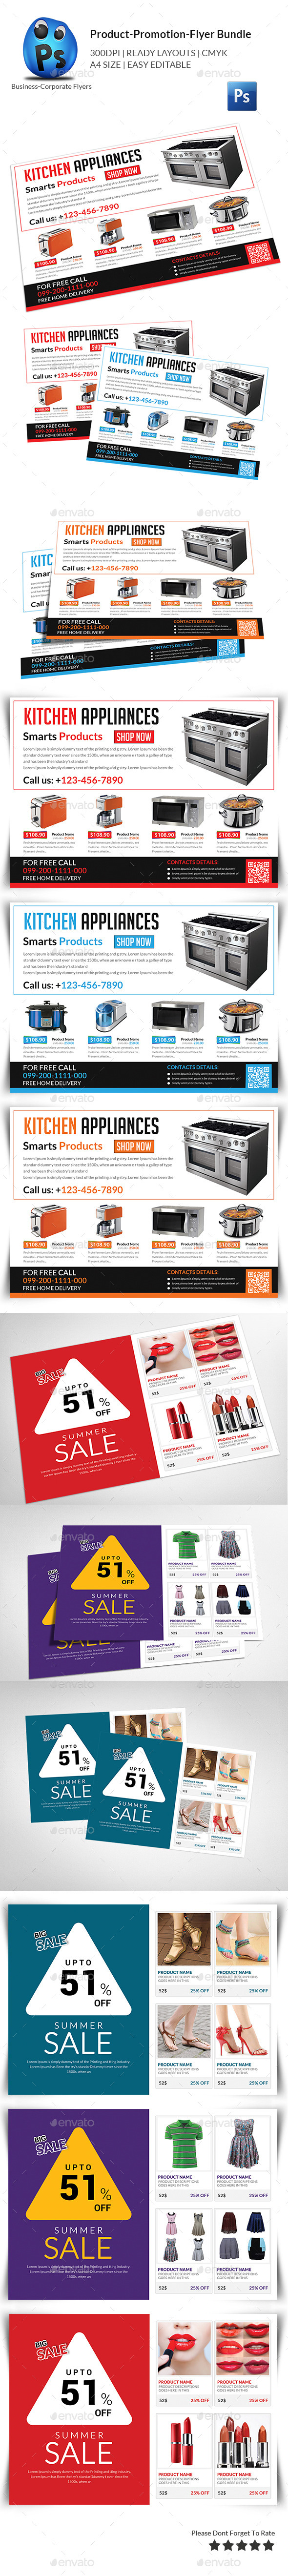 GraphicRiver Product Promotion Flyer Bundle 11553930